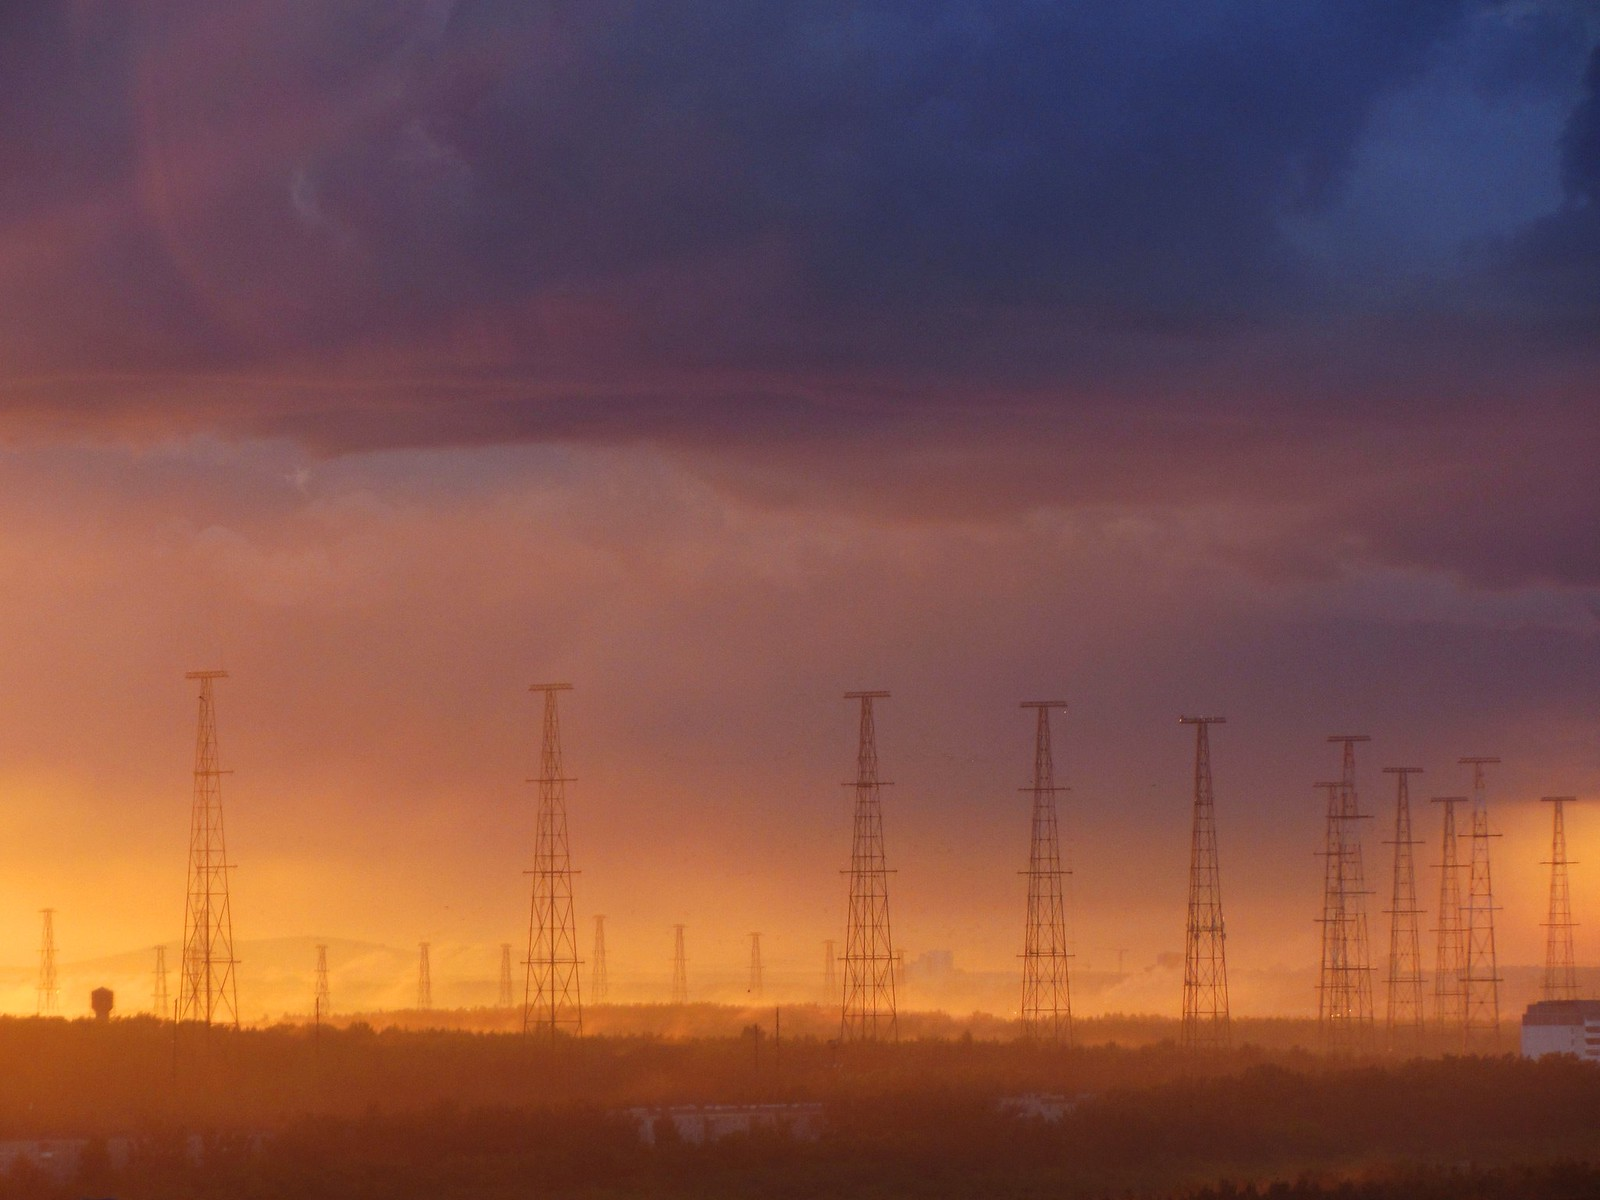 hazy sunset landscape with antennas